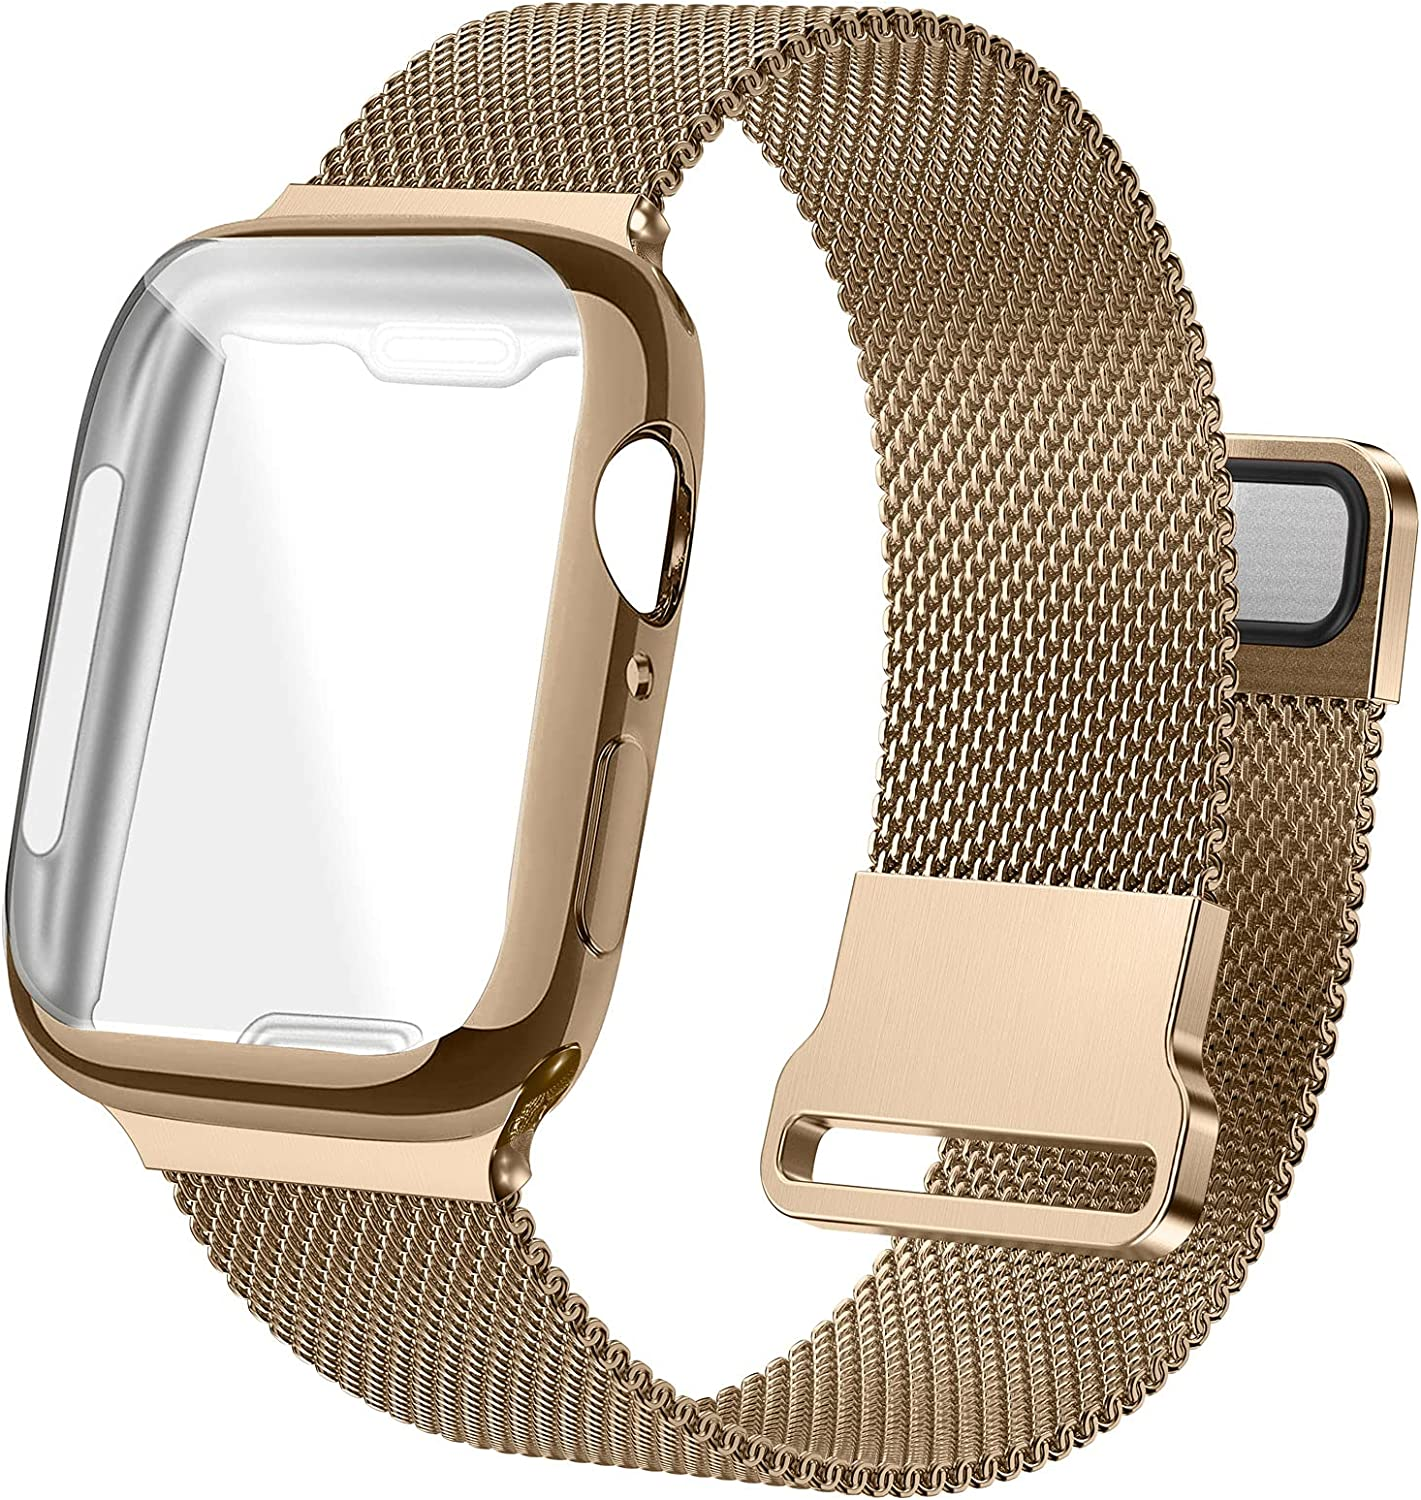 Bifeiyo Stainless Steel Band with Case Compatible with Apple Watch Bands 38mm for Women Men, Adjustable Magnetic Milanese Mesh Metal Strap for iWatch Series 6/5/4/3/2/1 SE [Vintage Gold]